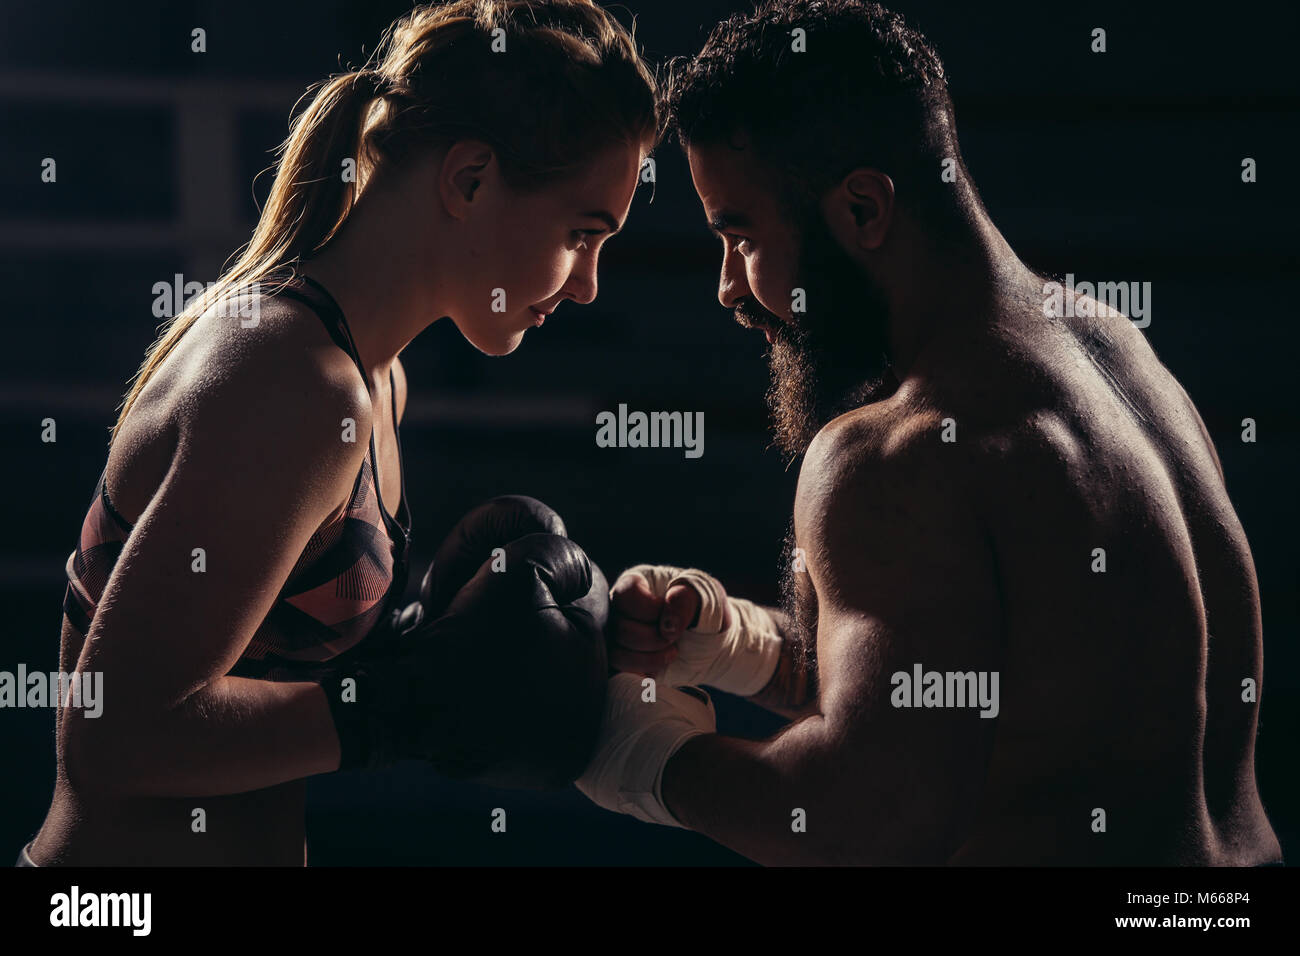 boxers with fighting stance against black background - Stock Image